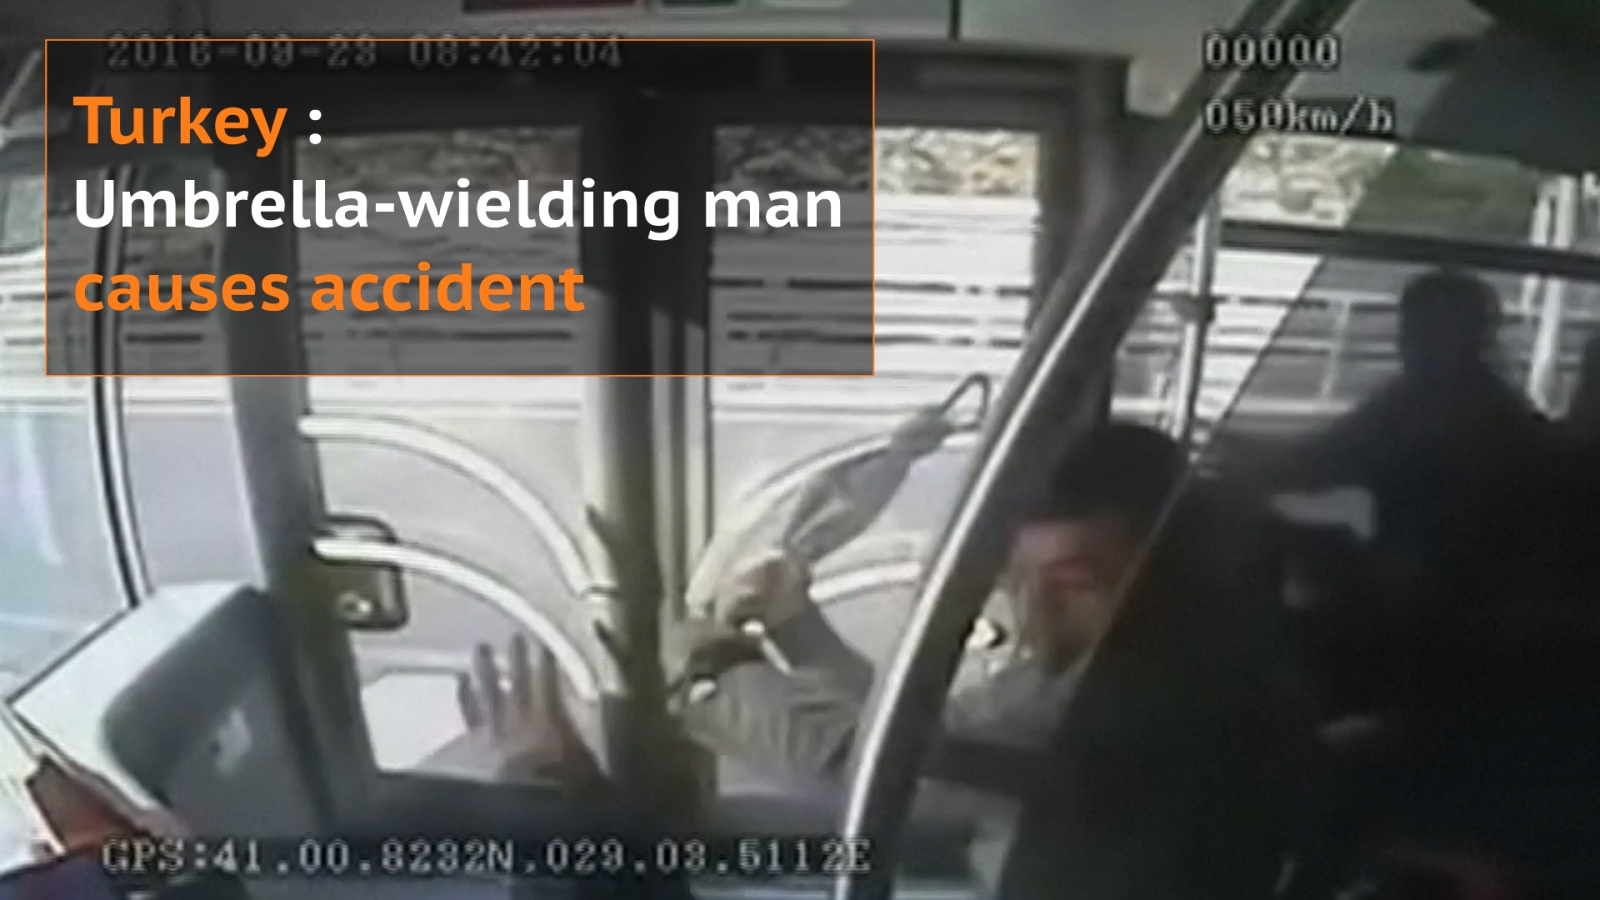 Umbrella-wielding man causes accident